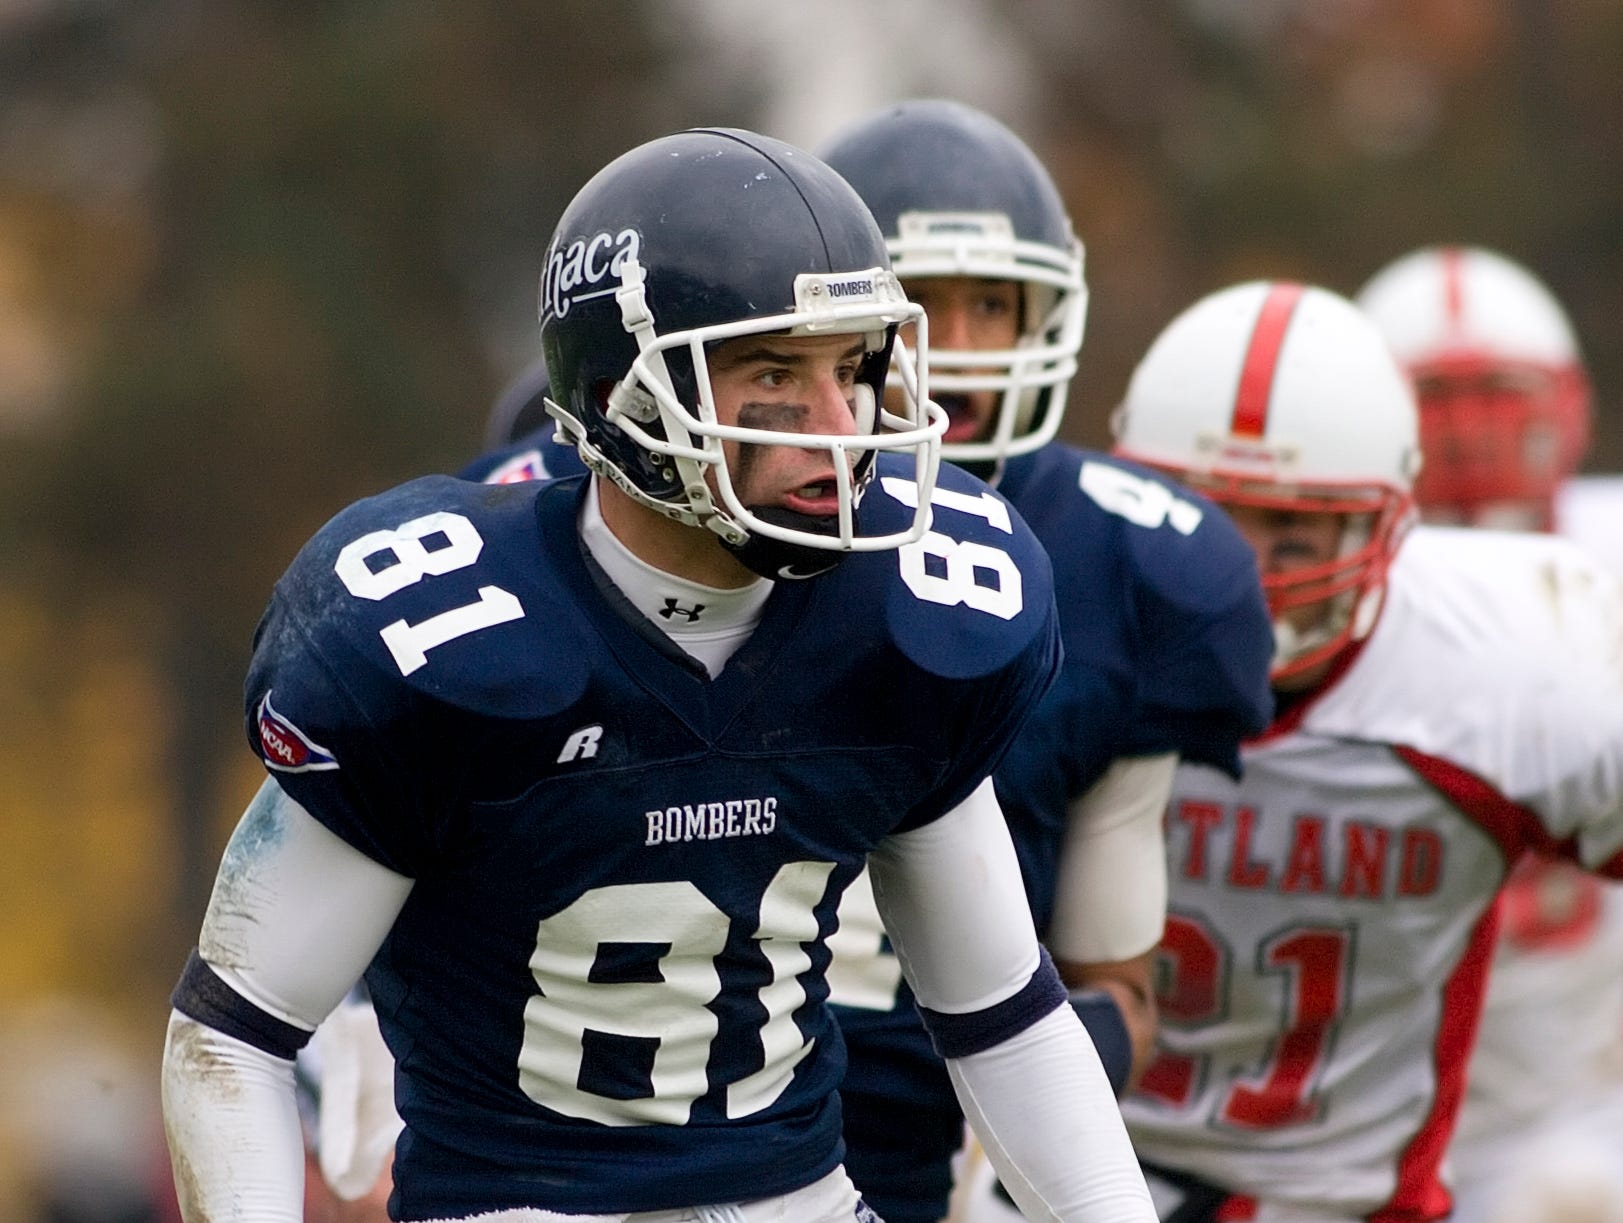 2007: Ithaca College wide receiver Kyle Crandall gets set for a block during their Cortaca Jug game against Cortland in November of 2007.